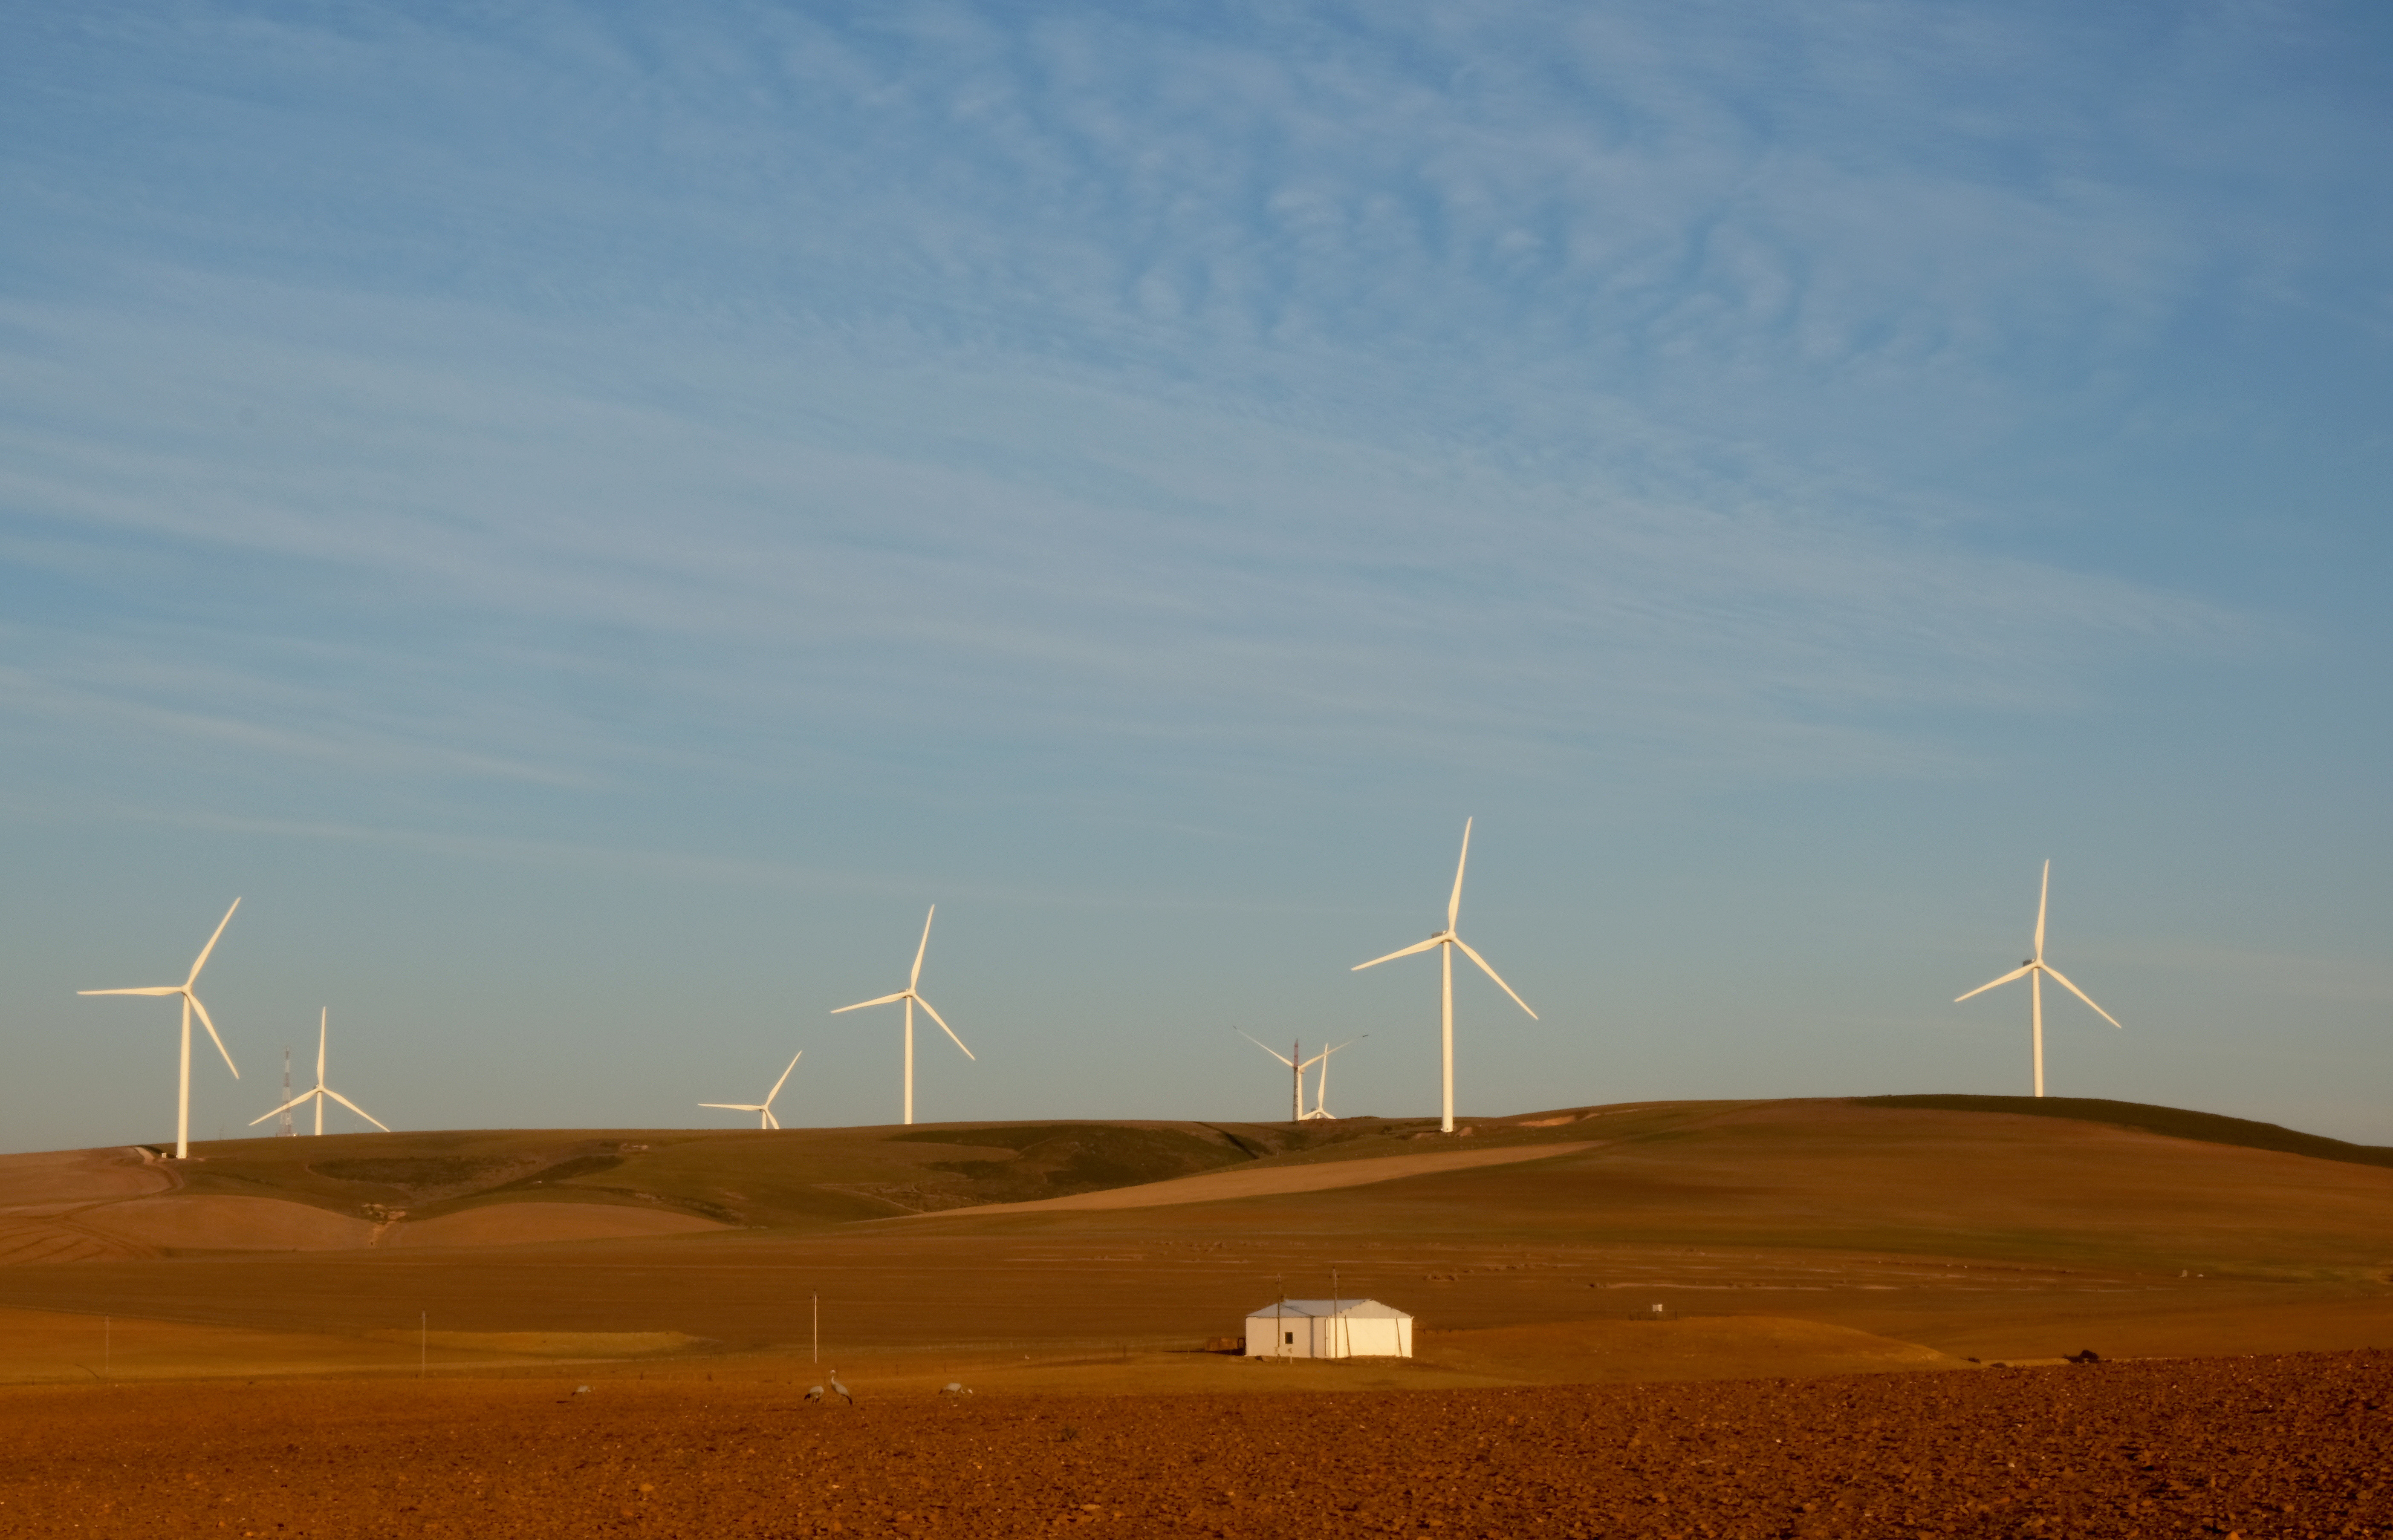 Wind turbines produce renewable energy outside Caledon, South Africa, May 20, 2020. Picture taken May 20, 2020. REUTERS/Mike Hutchings - RC272H96YWGL